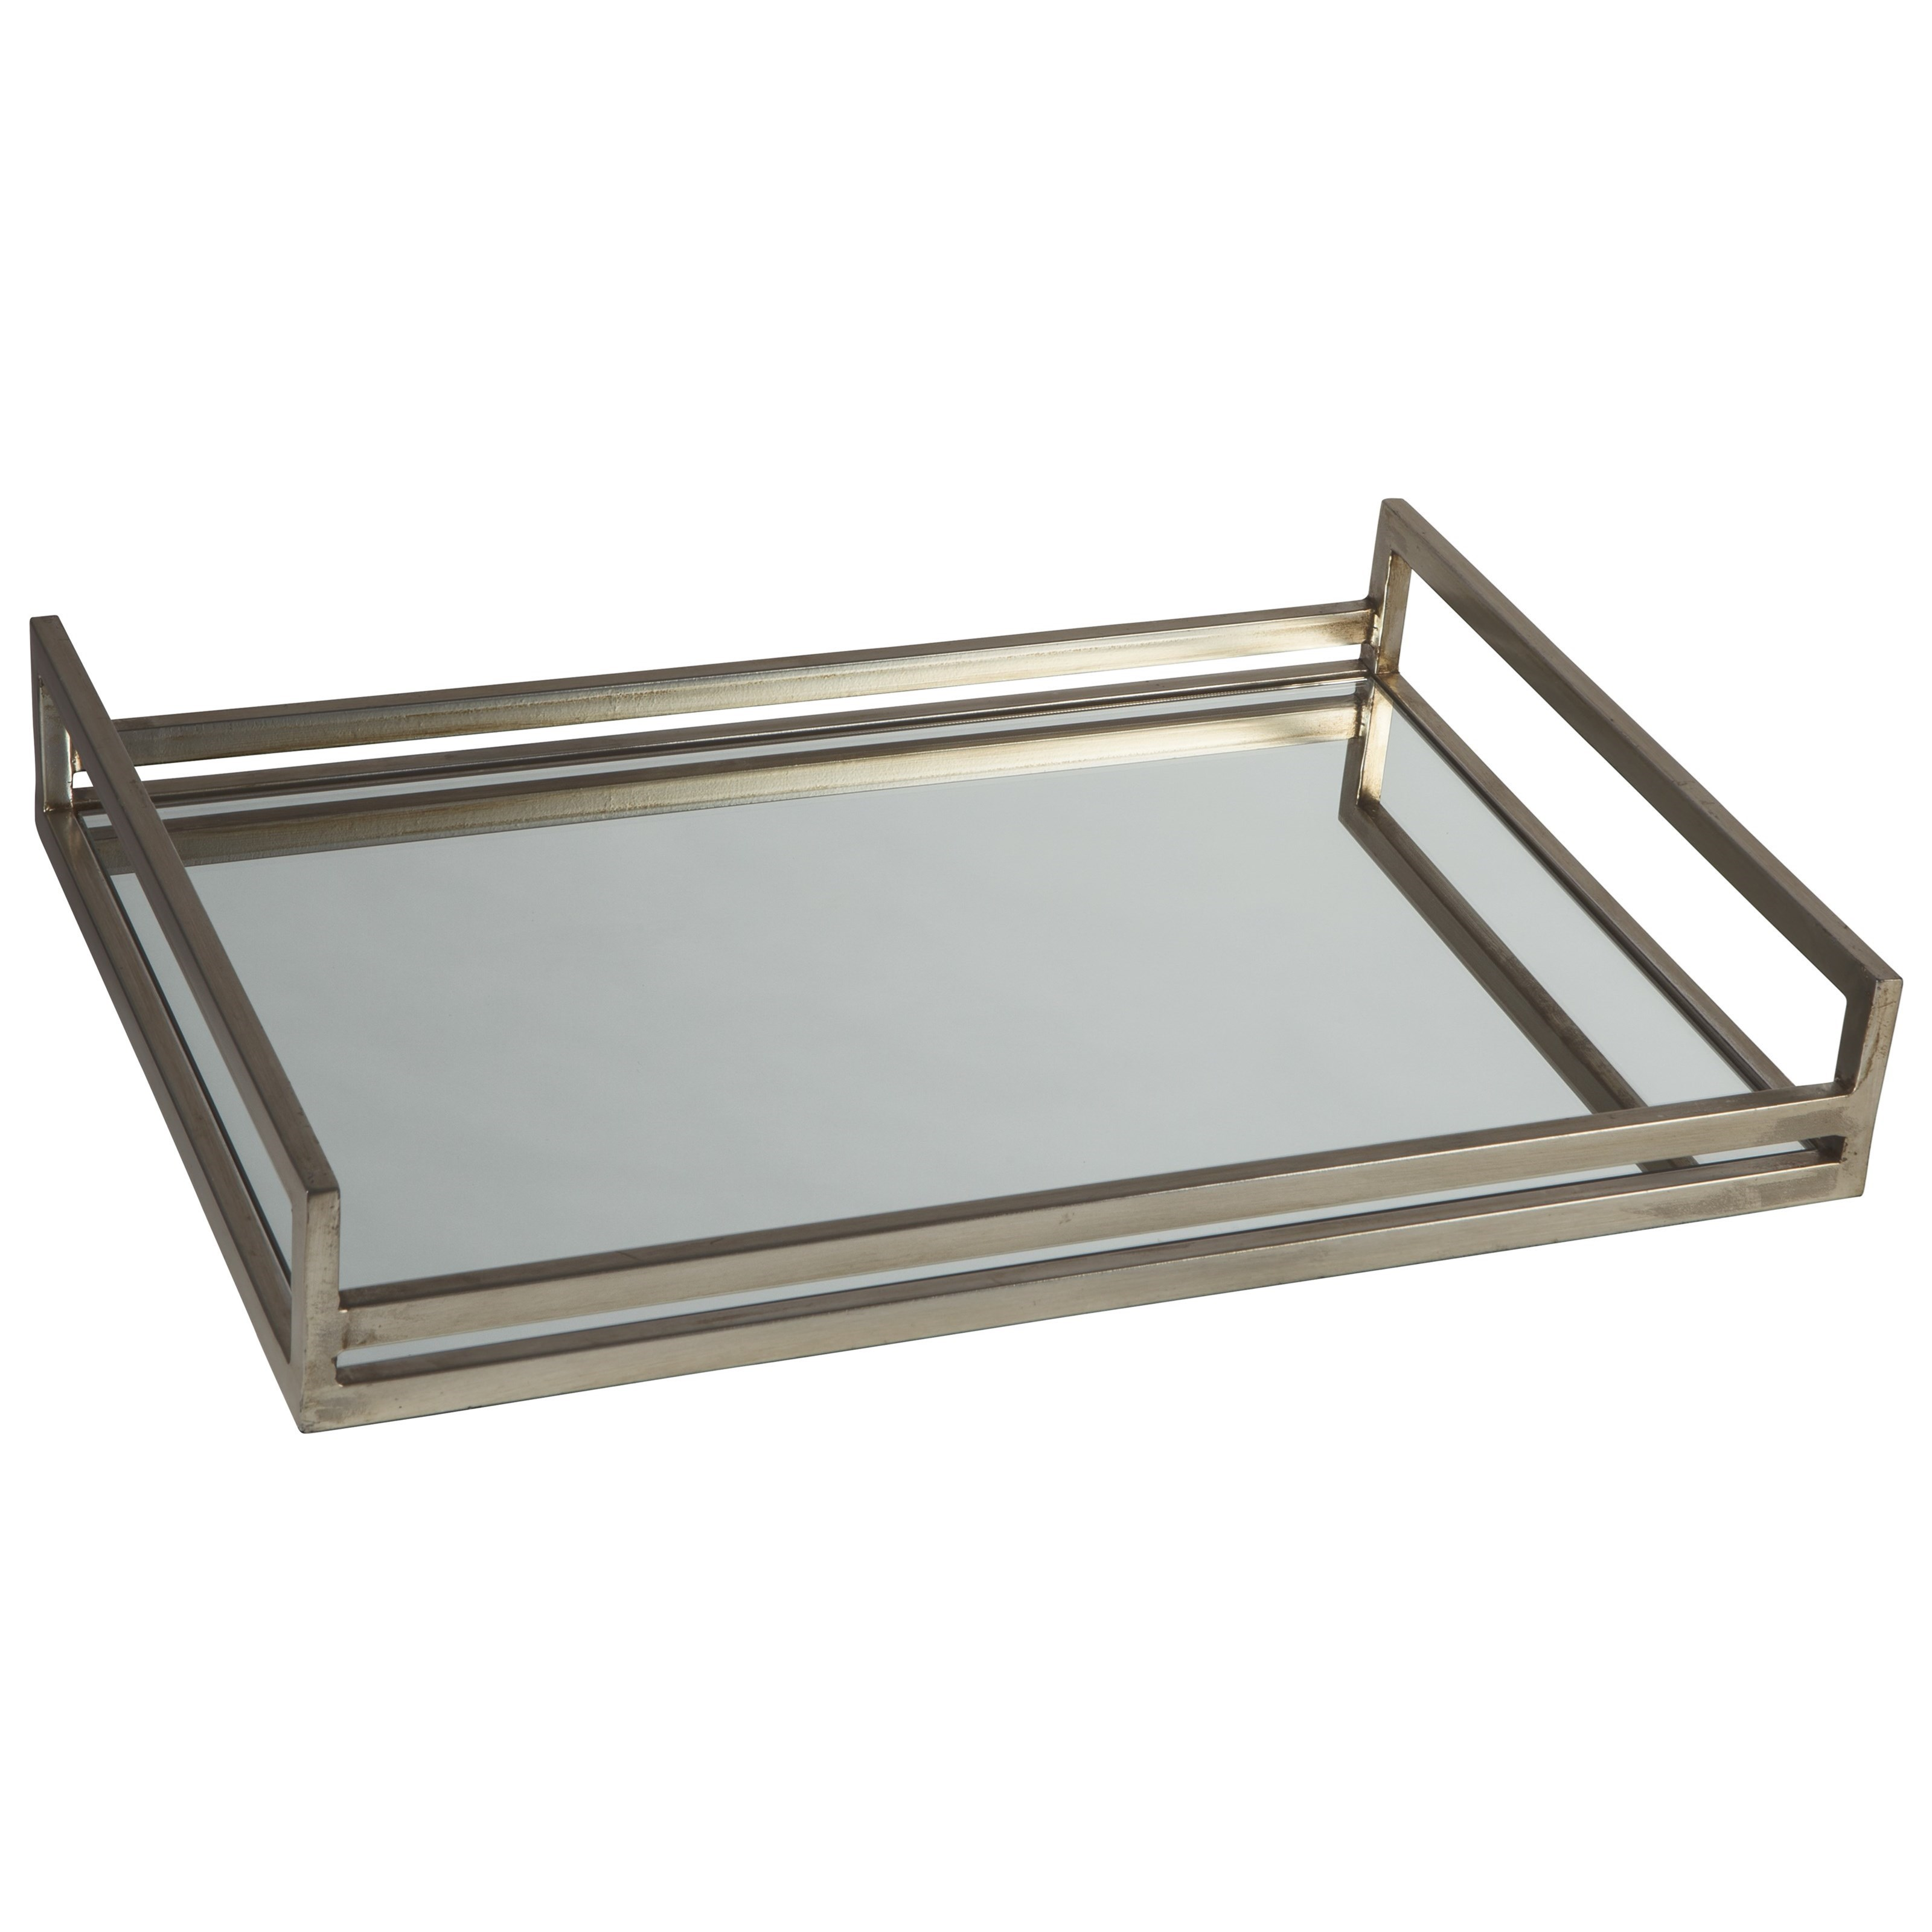 Accents Derex Silver Tray by Signature Design by Ashley at Pilgrim Furniture City